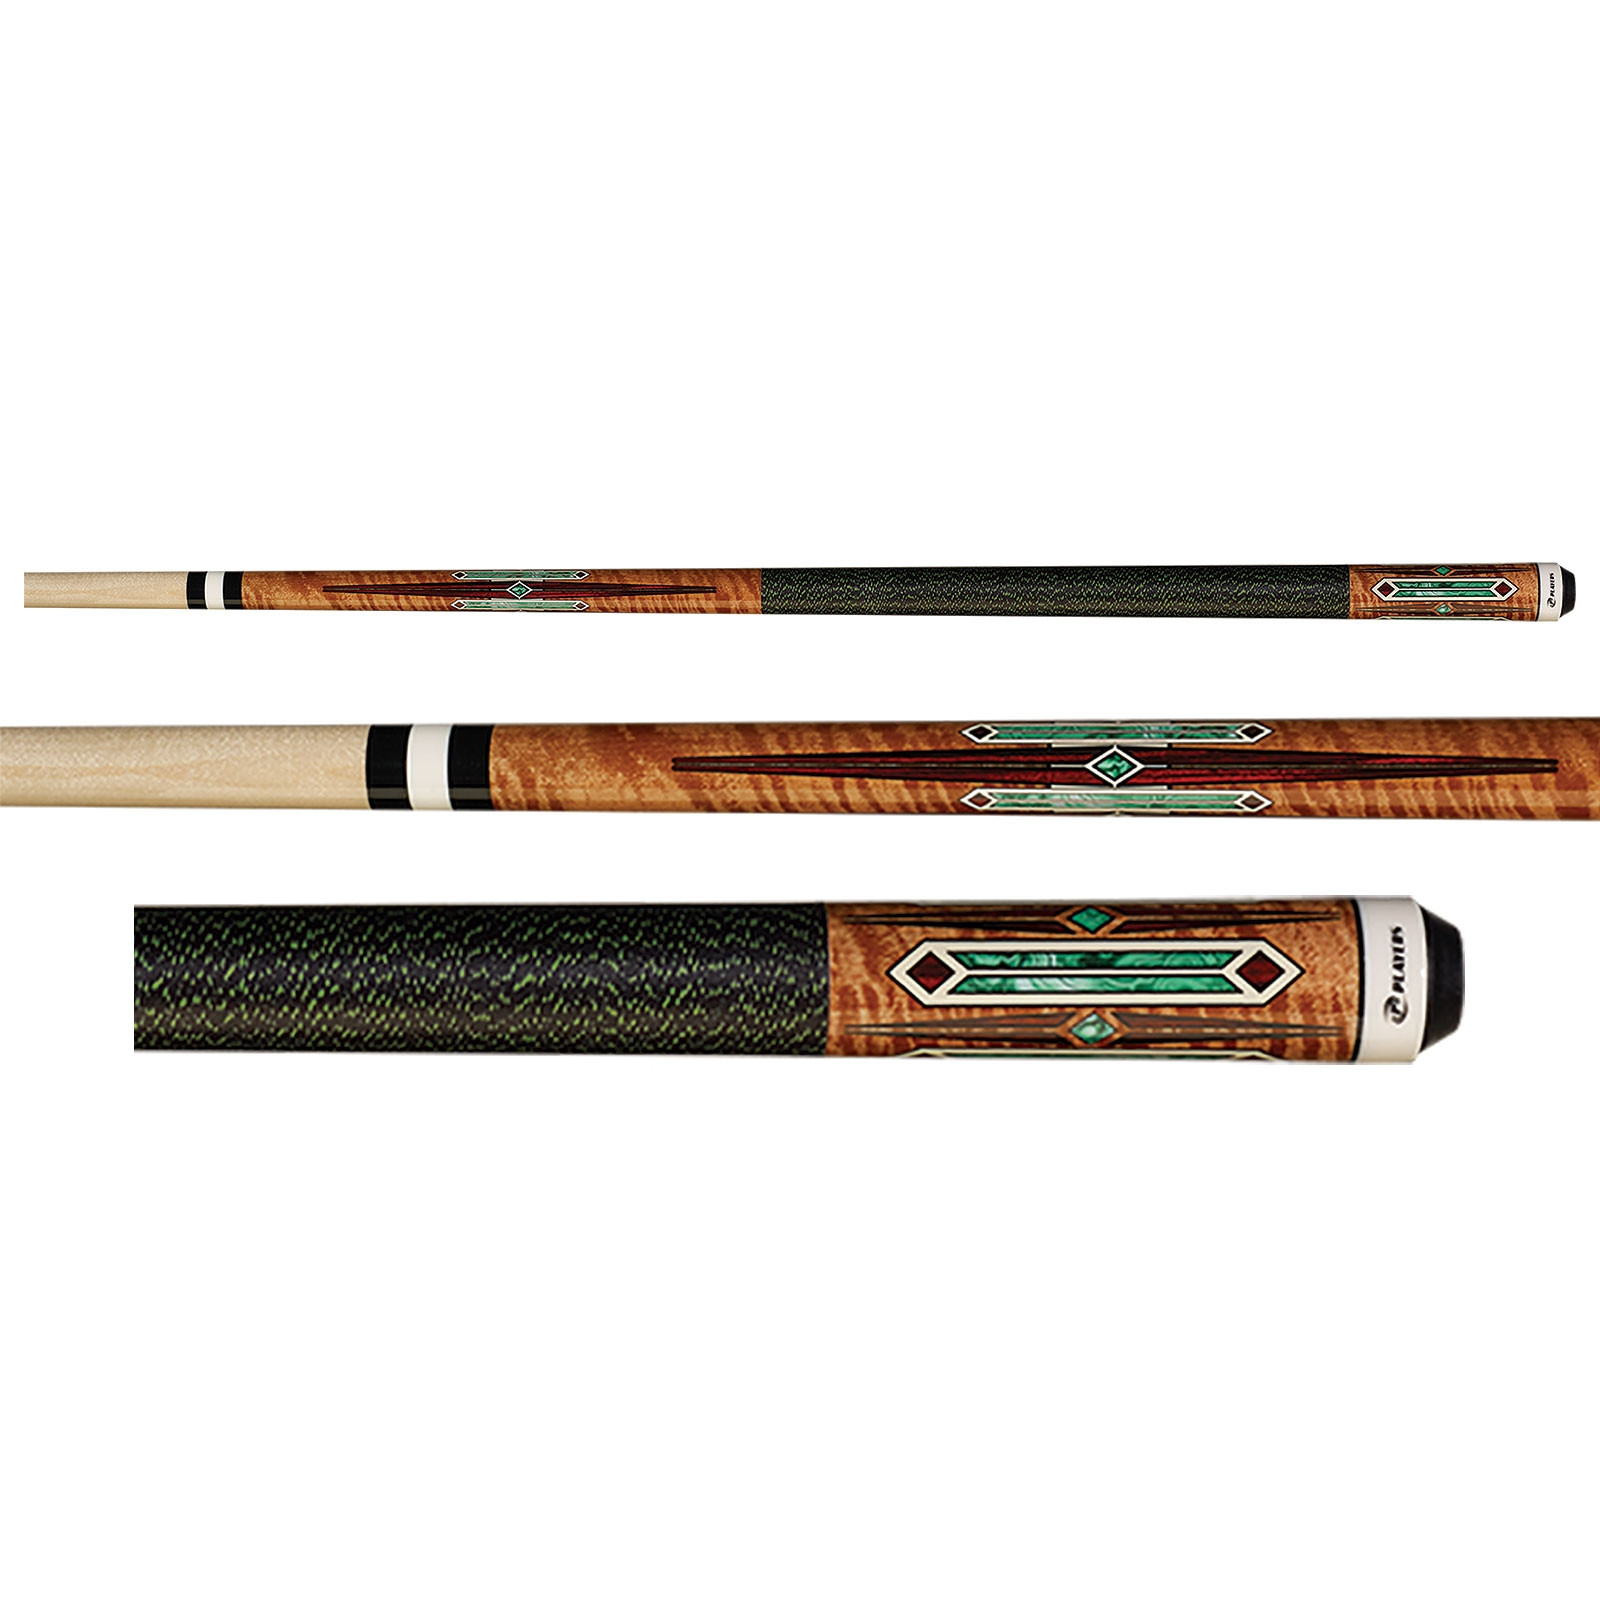 Players G-4122 Antique Brown Pool Cue Stick